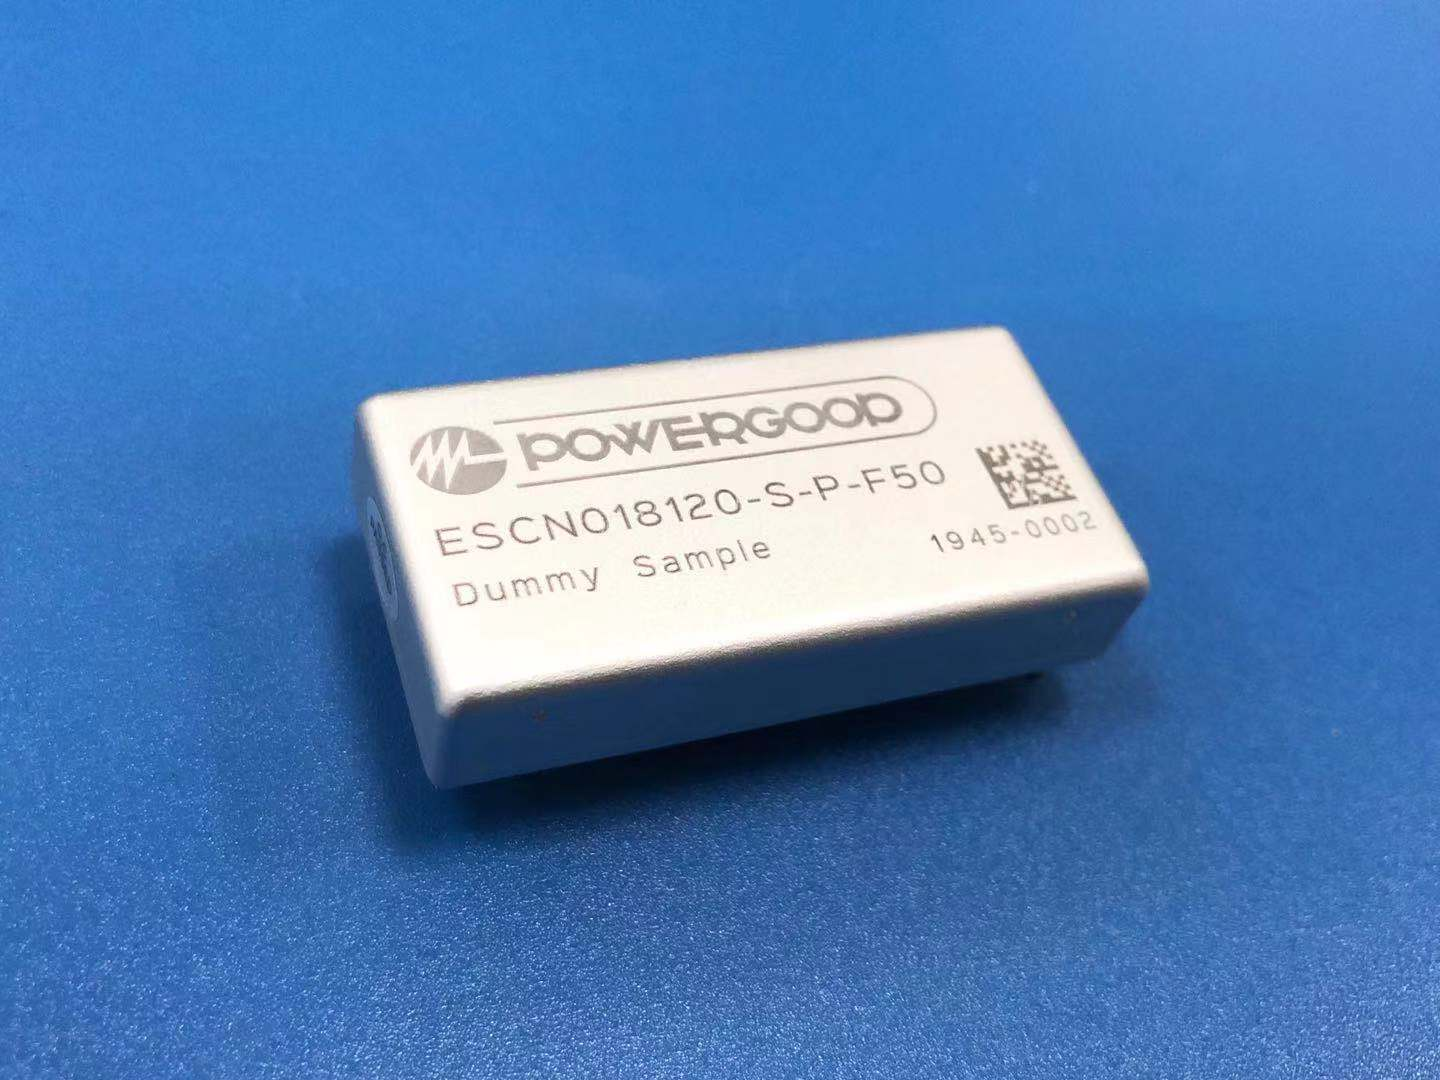 ESCN Series - up to 60W